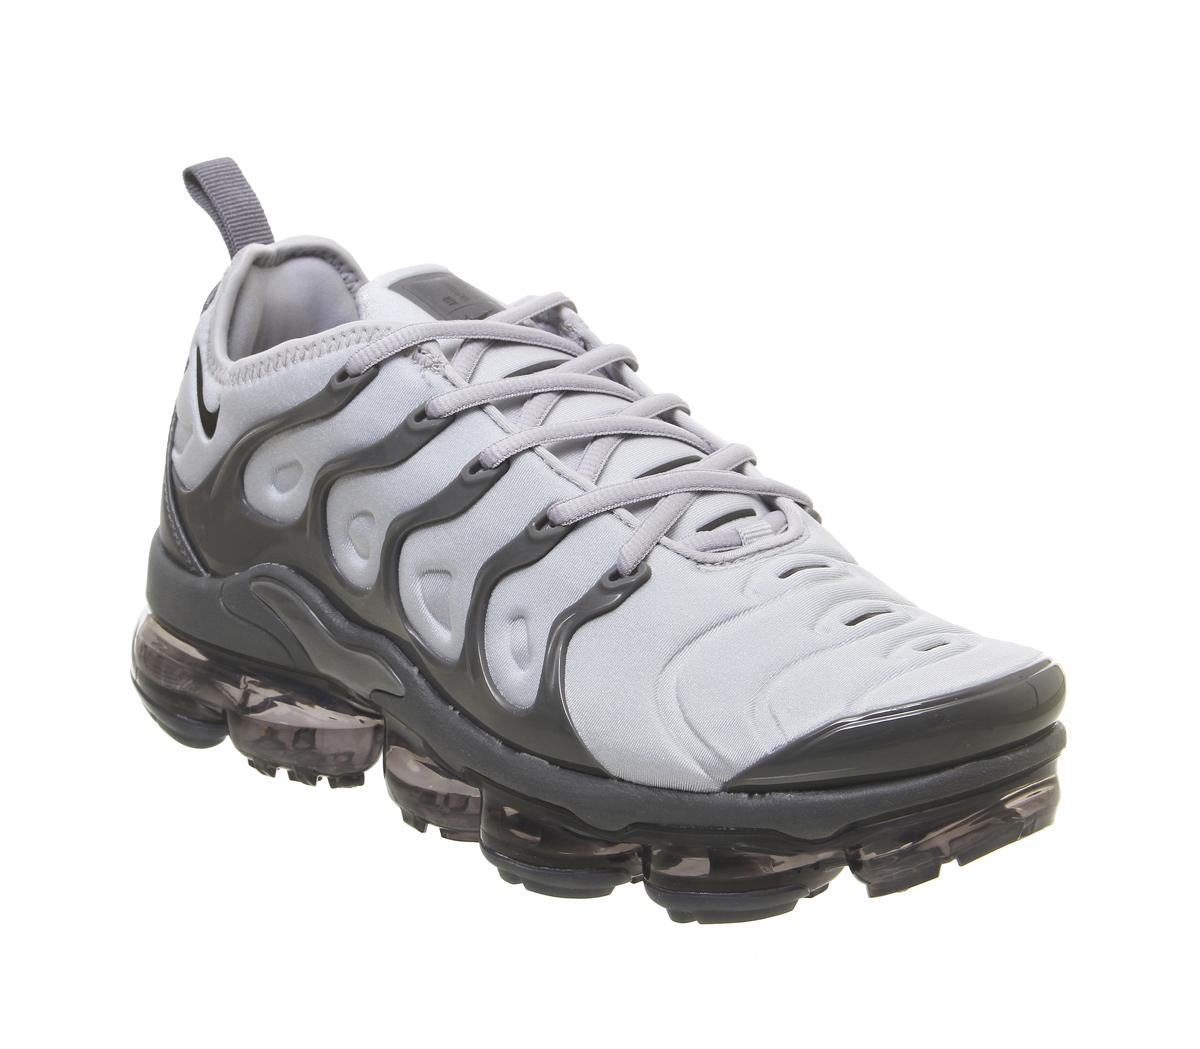 e21b10154bd Lyst - Nike Air Vapormax Plus Trainers in Gray for Men